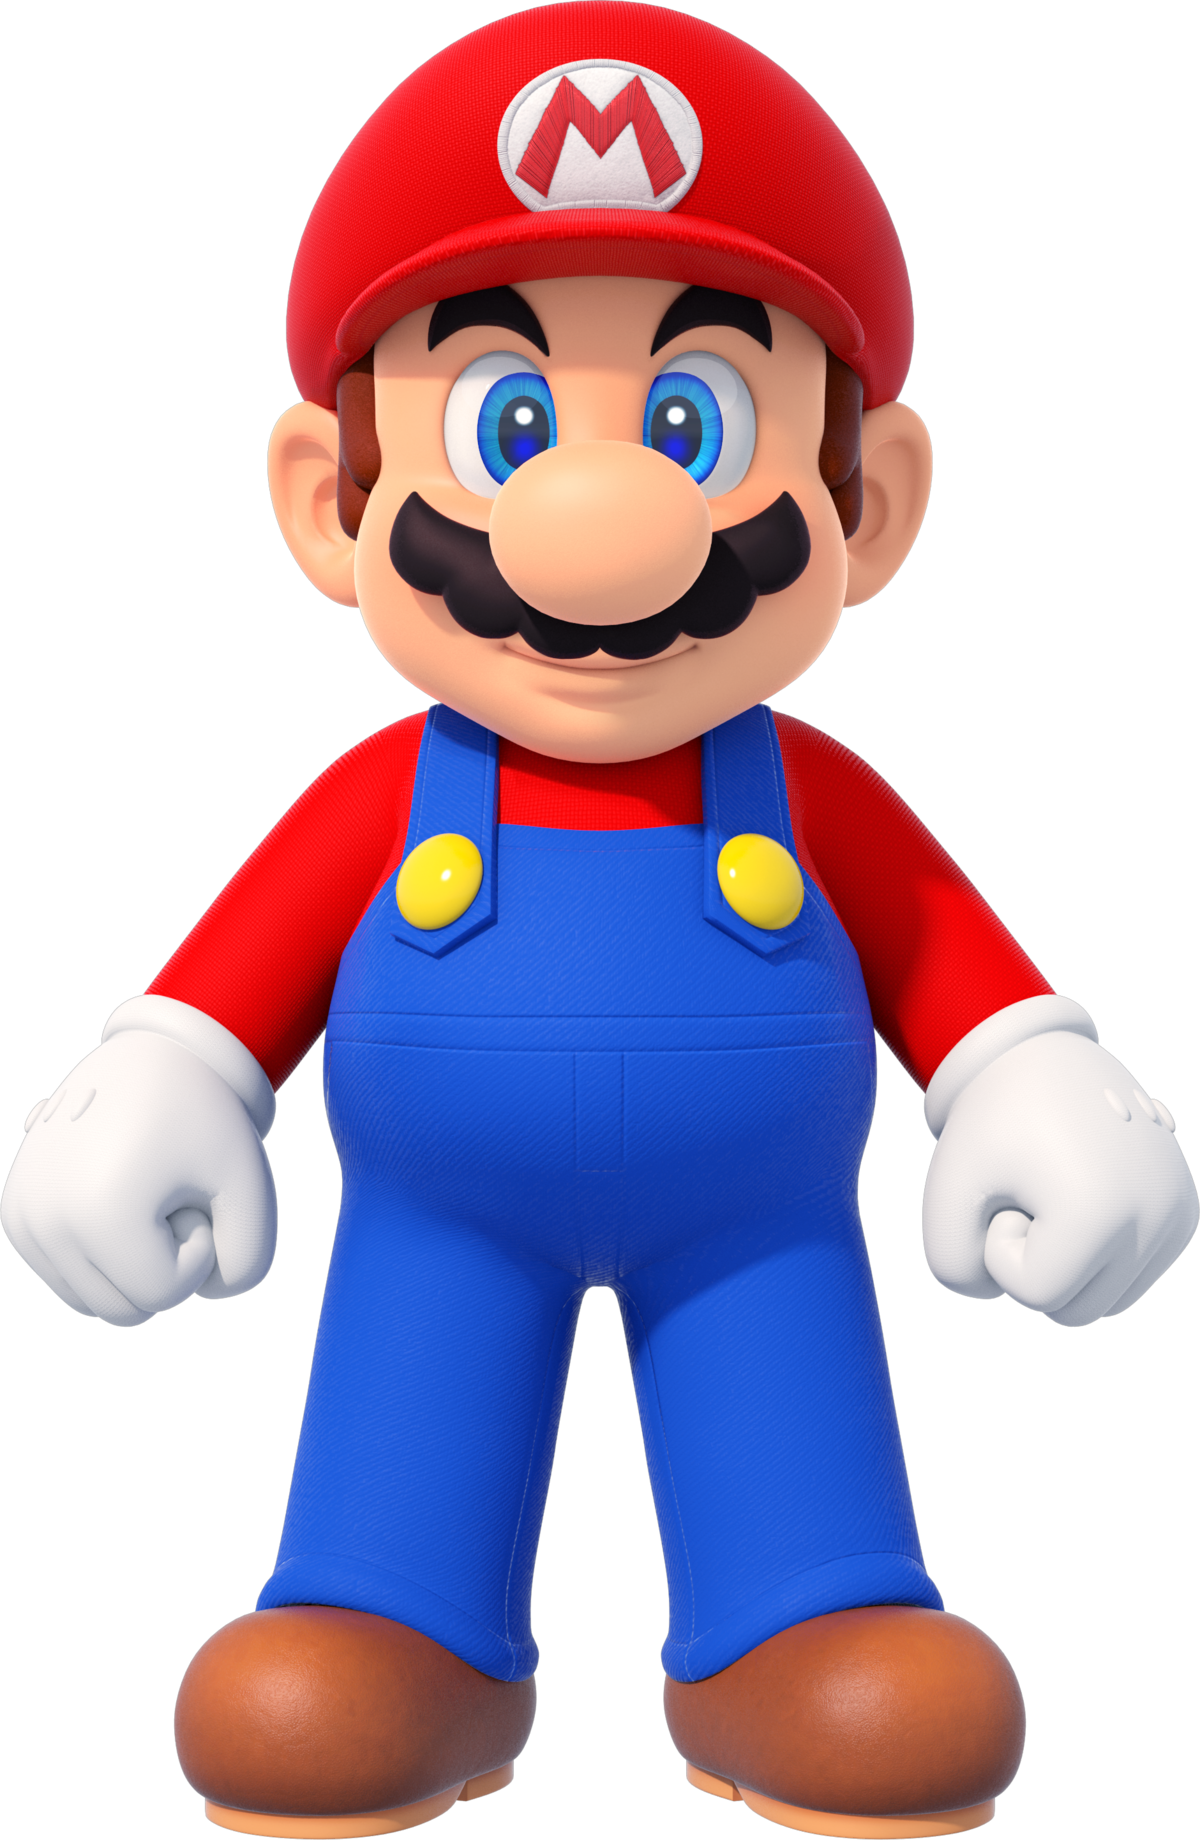 Mario Super Mario Wiki The Mario Encyclopedia